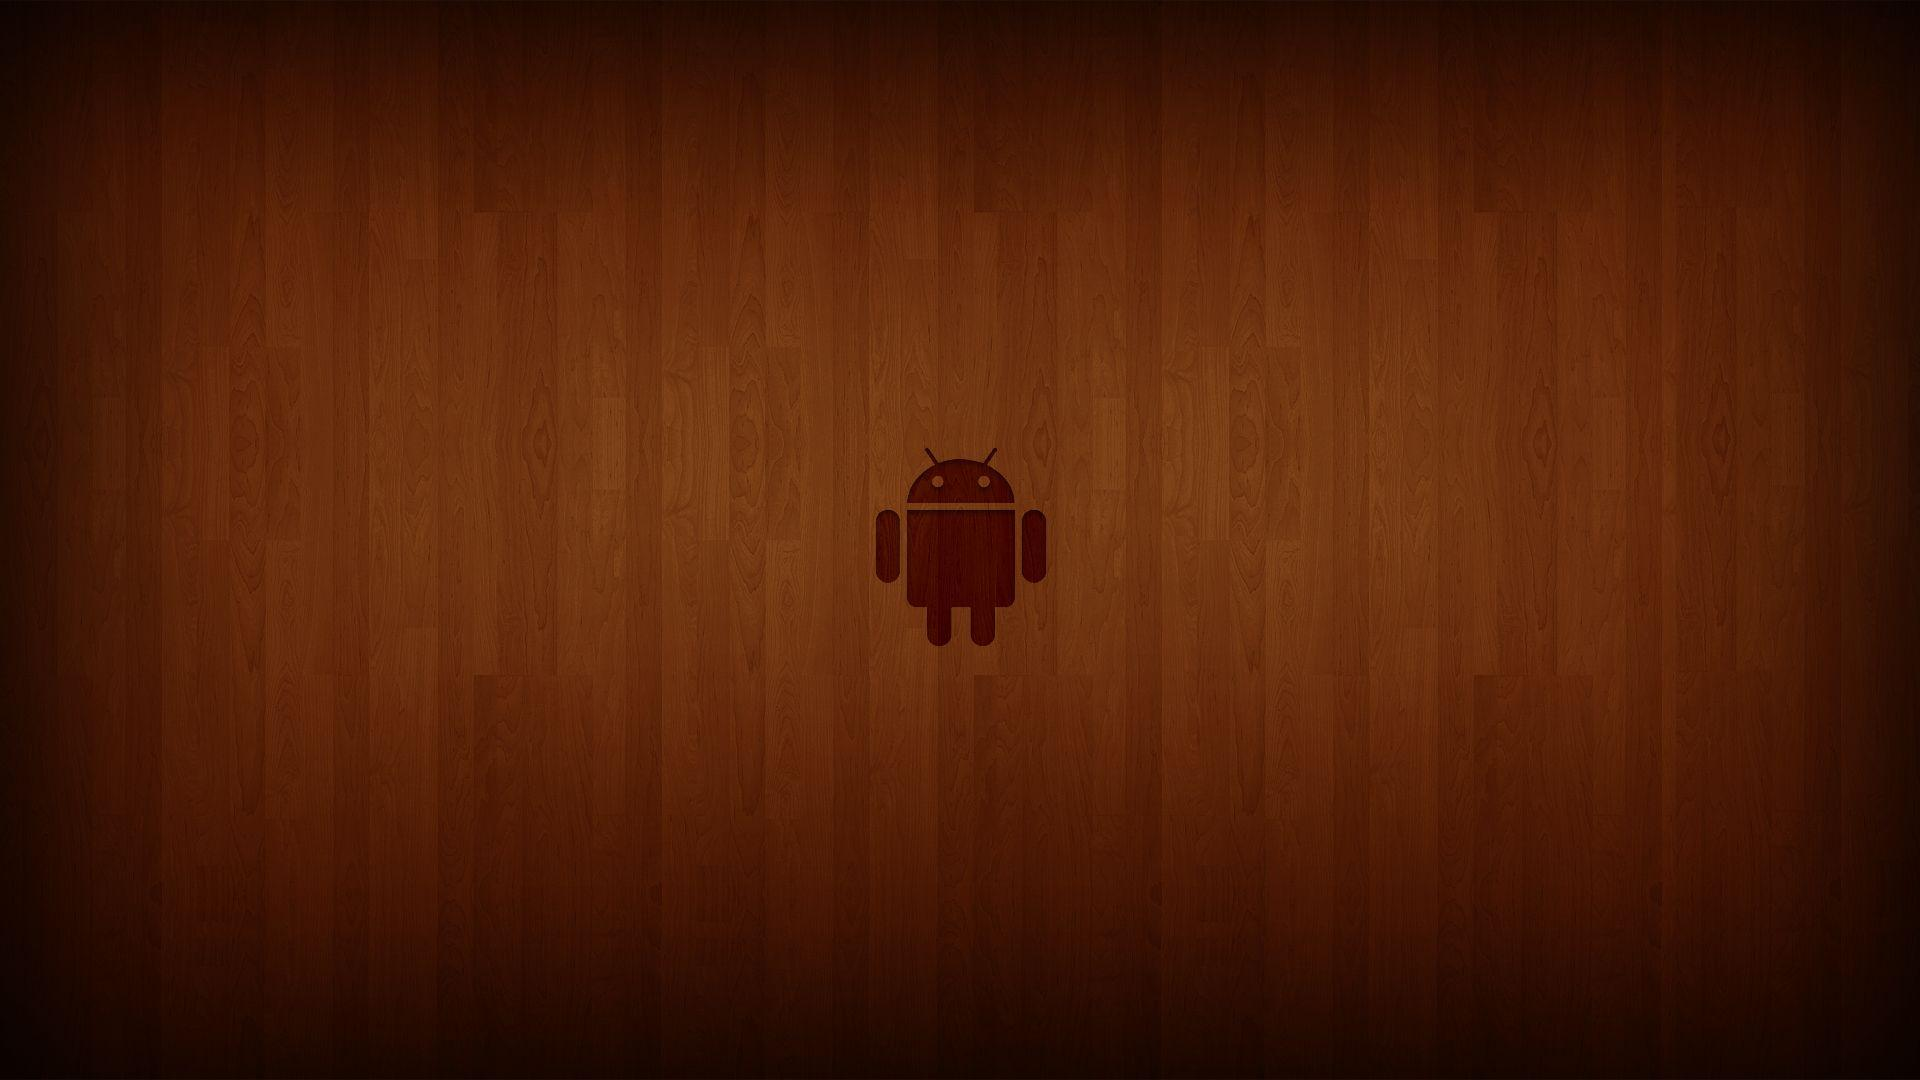 Android Logo Wooden Wallpapers Wallpaper Cave